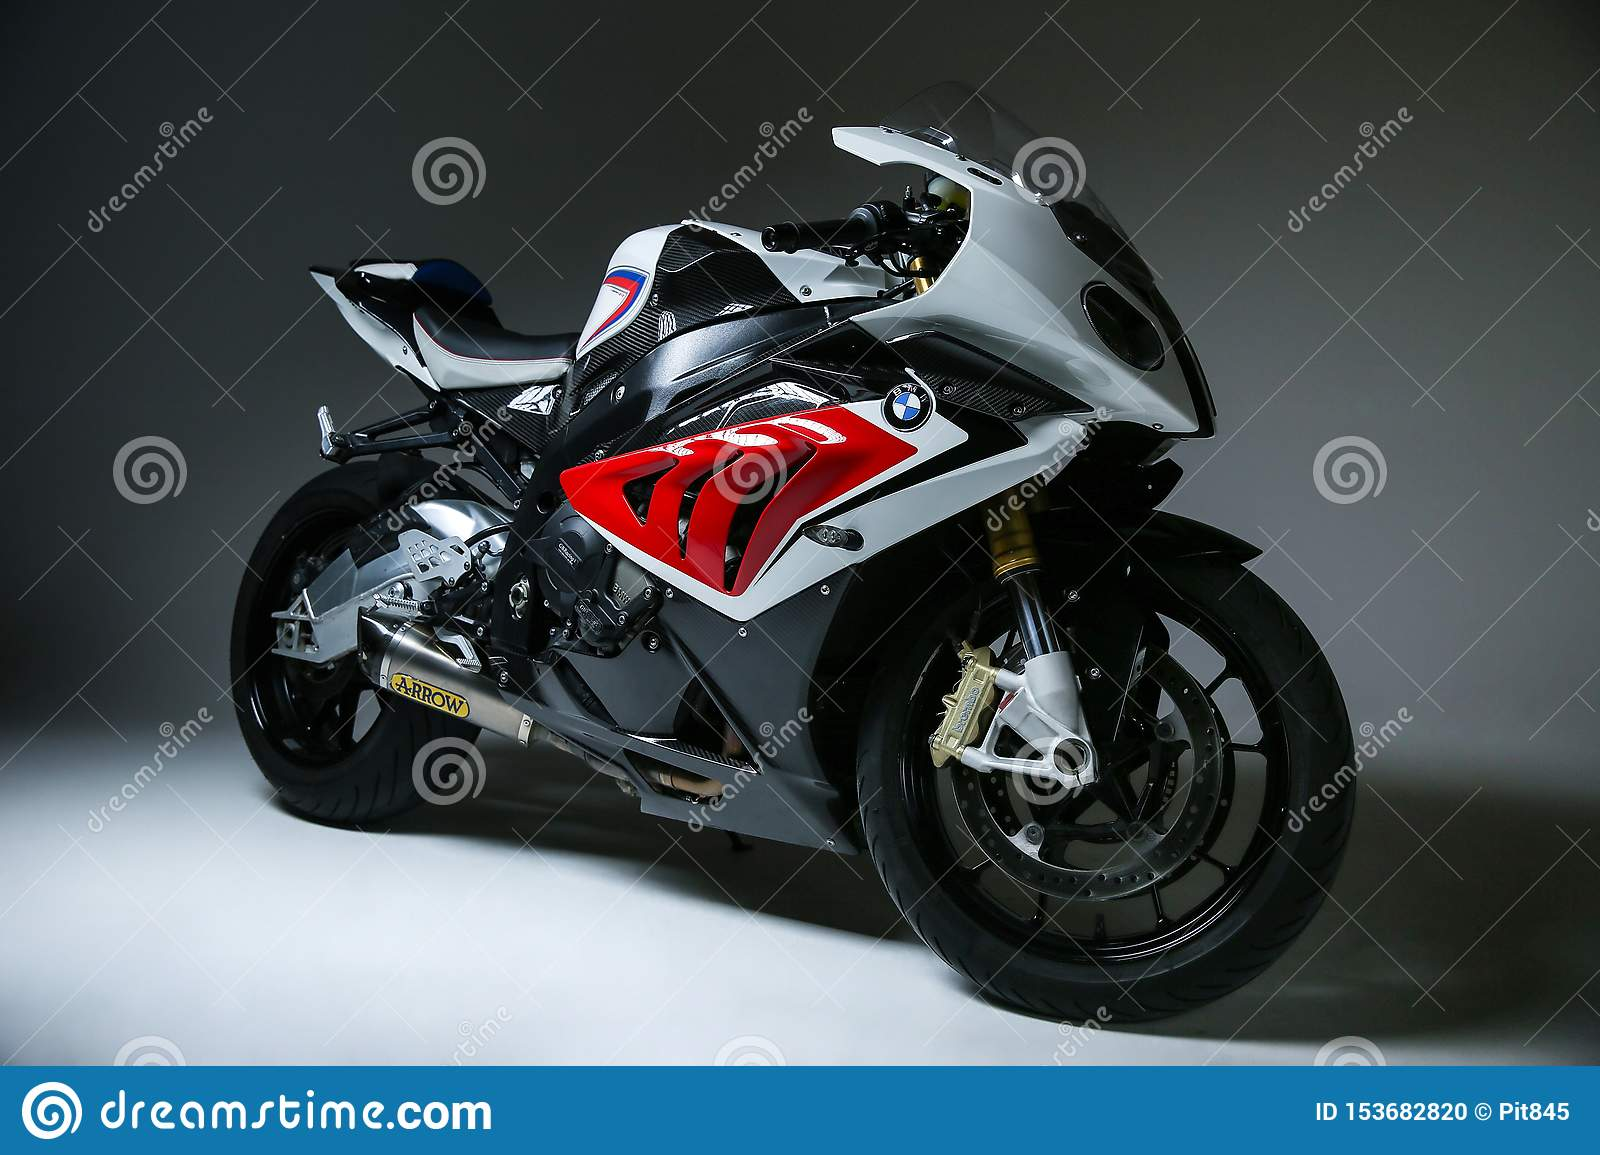 Sportbike Bmw S1000rr On Smooth Background Editorial Image Image Of Front Powerful 153682820